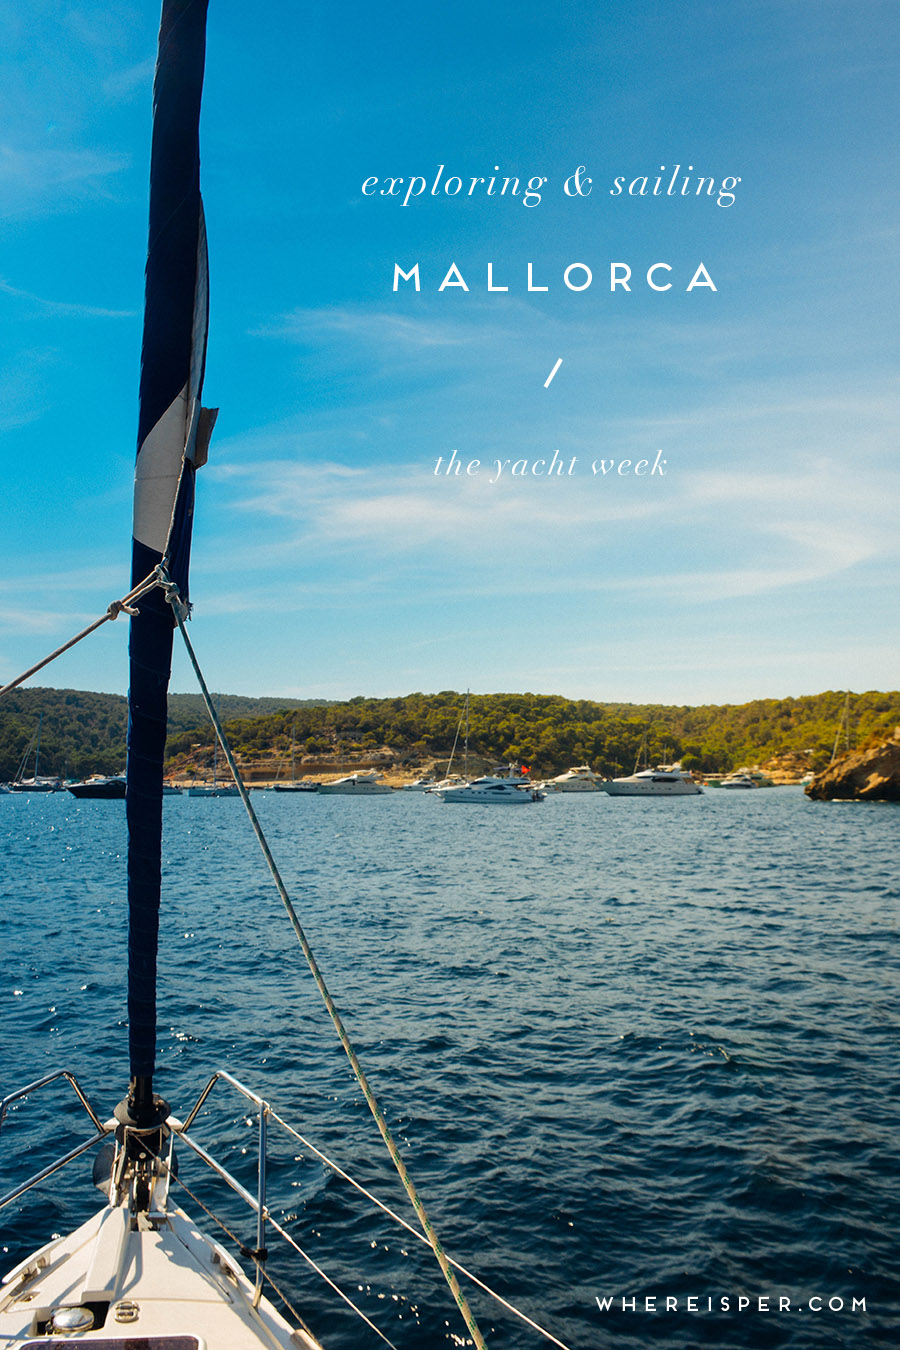 The Yacht Week Mallorca